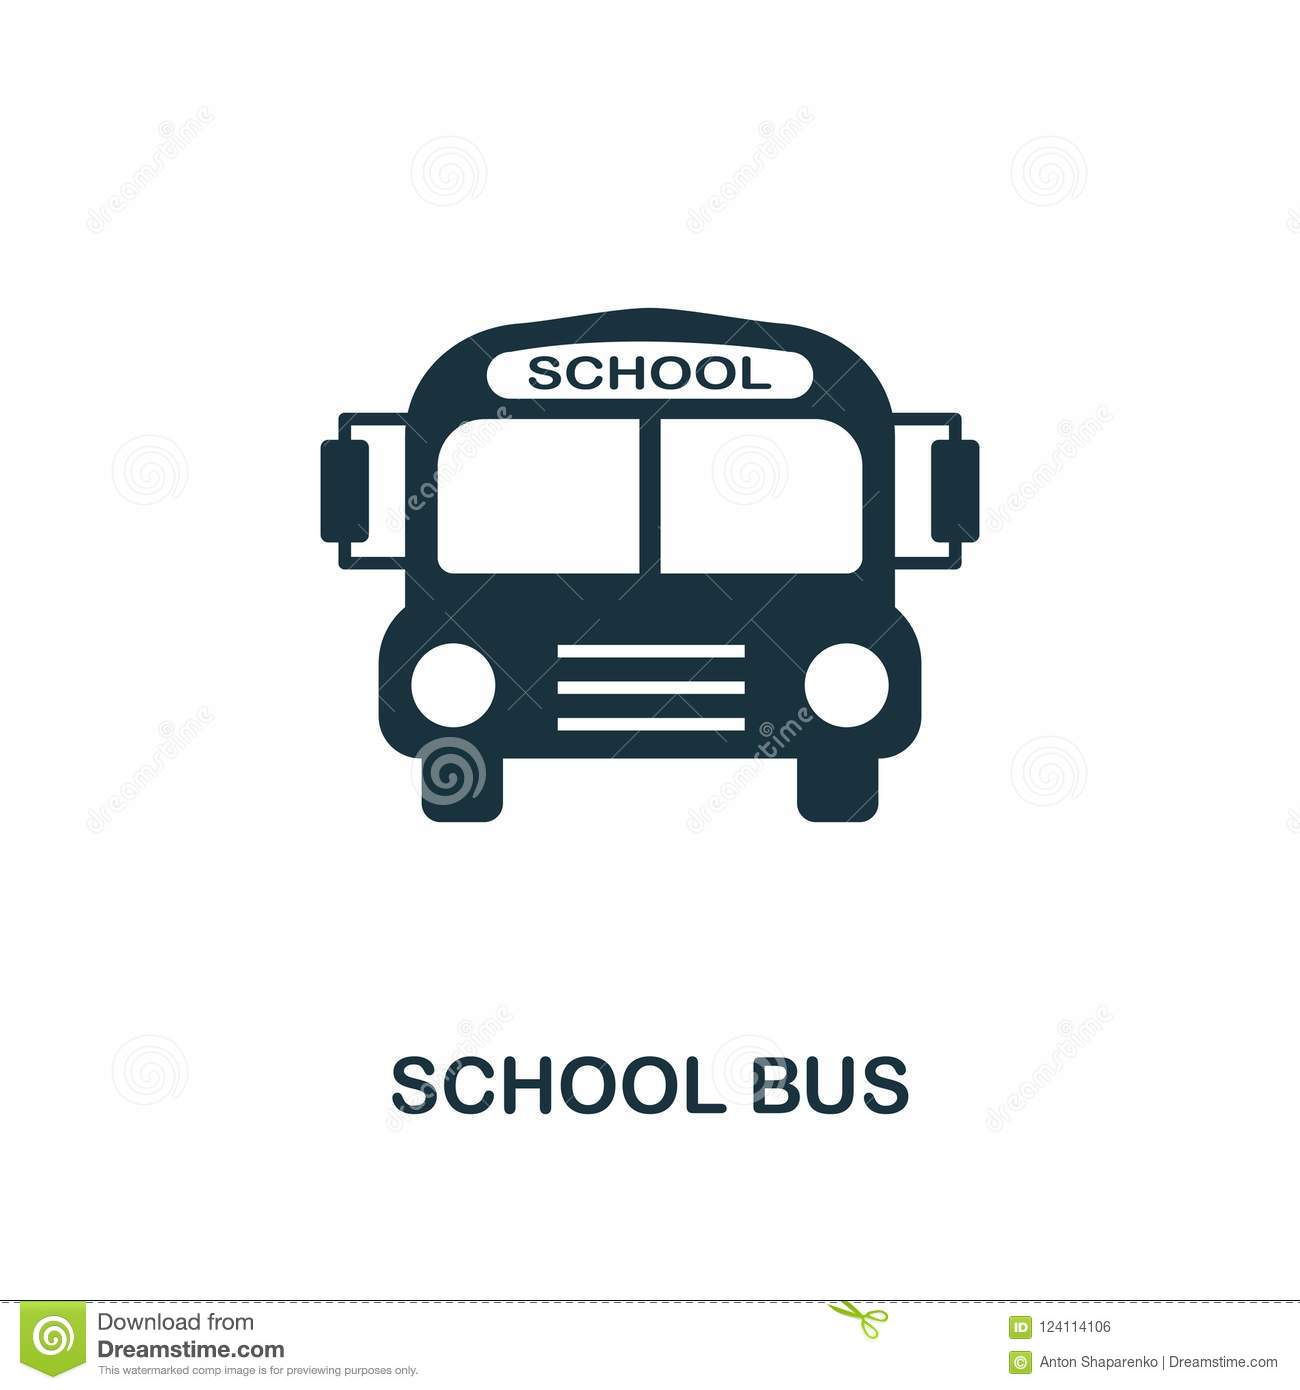 School Bus Icon Monochrome Style Icon Design From School Icon Collection Ui Illustration Of School Bus Icon Pictogram Isolated Stock Illustration Illustration Of Black Style 124114106